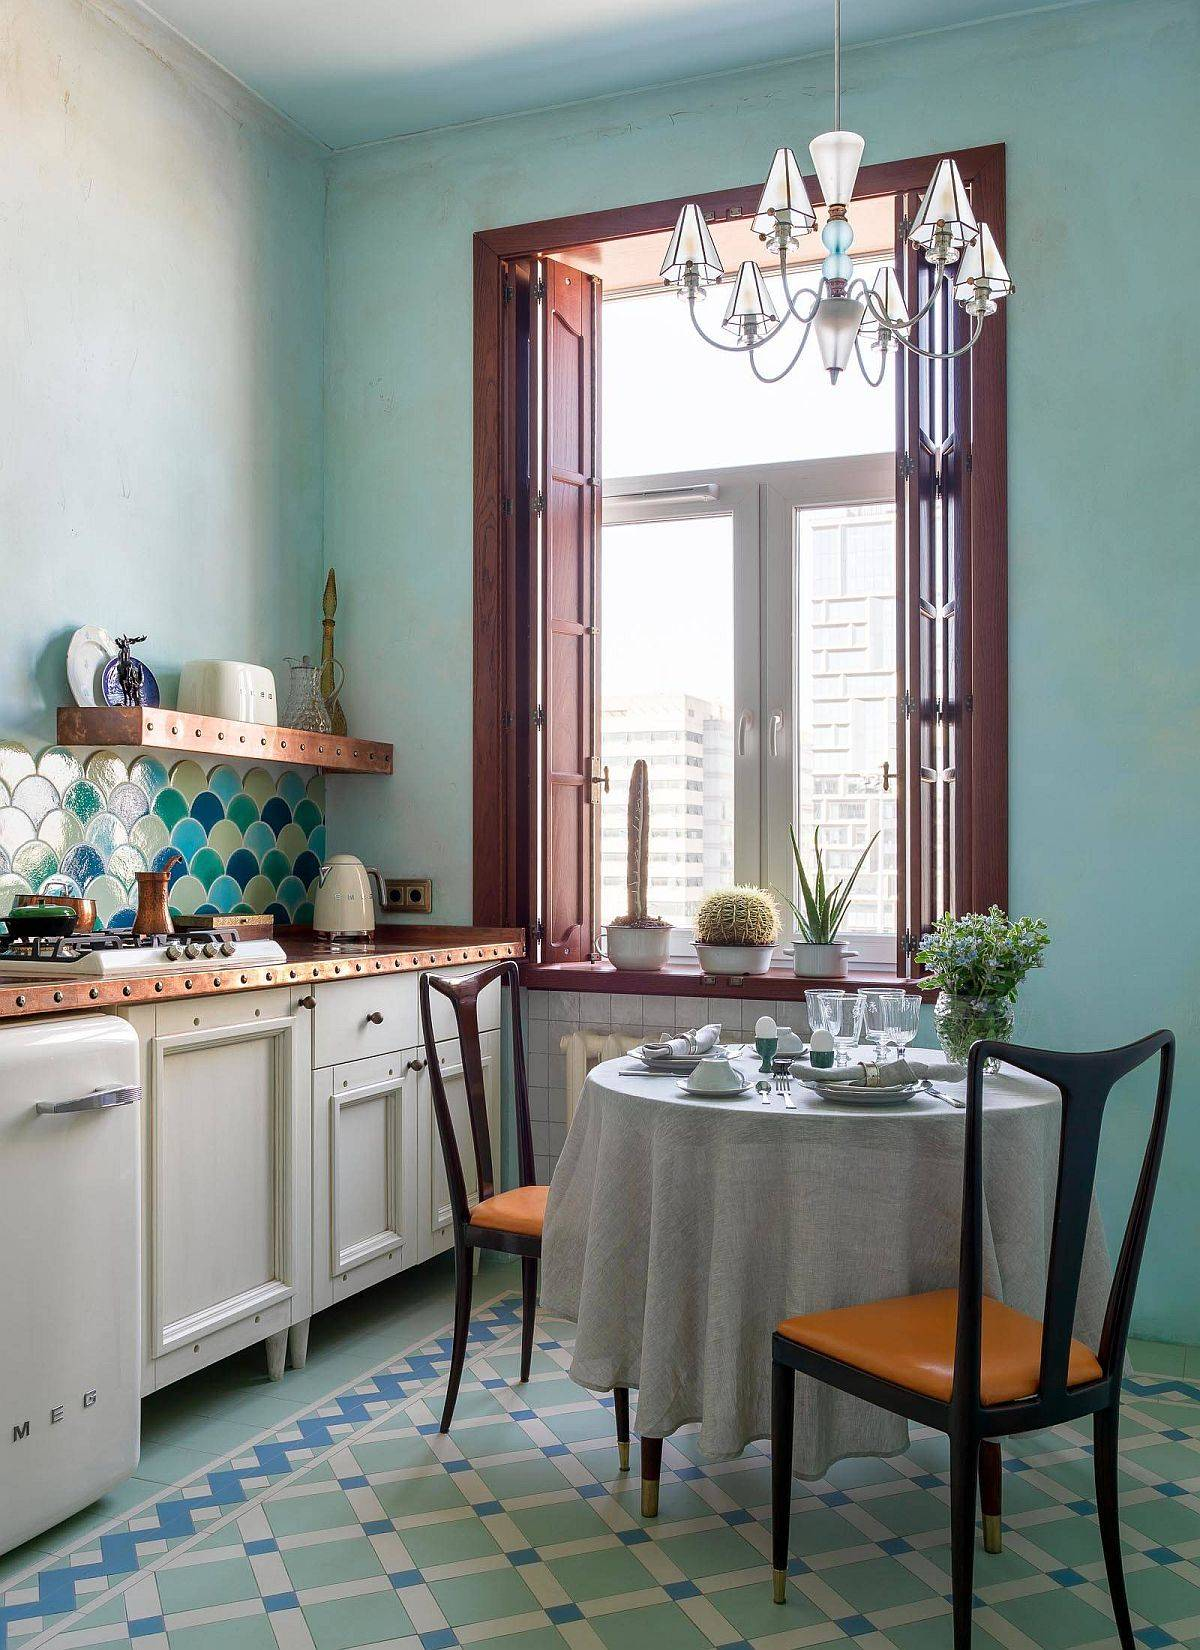 Finding-the-right-color-and-organization-for-the-small-eclectic-kitchen-79027